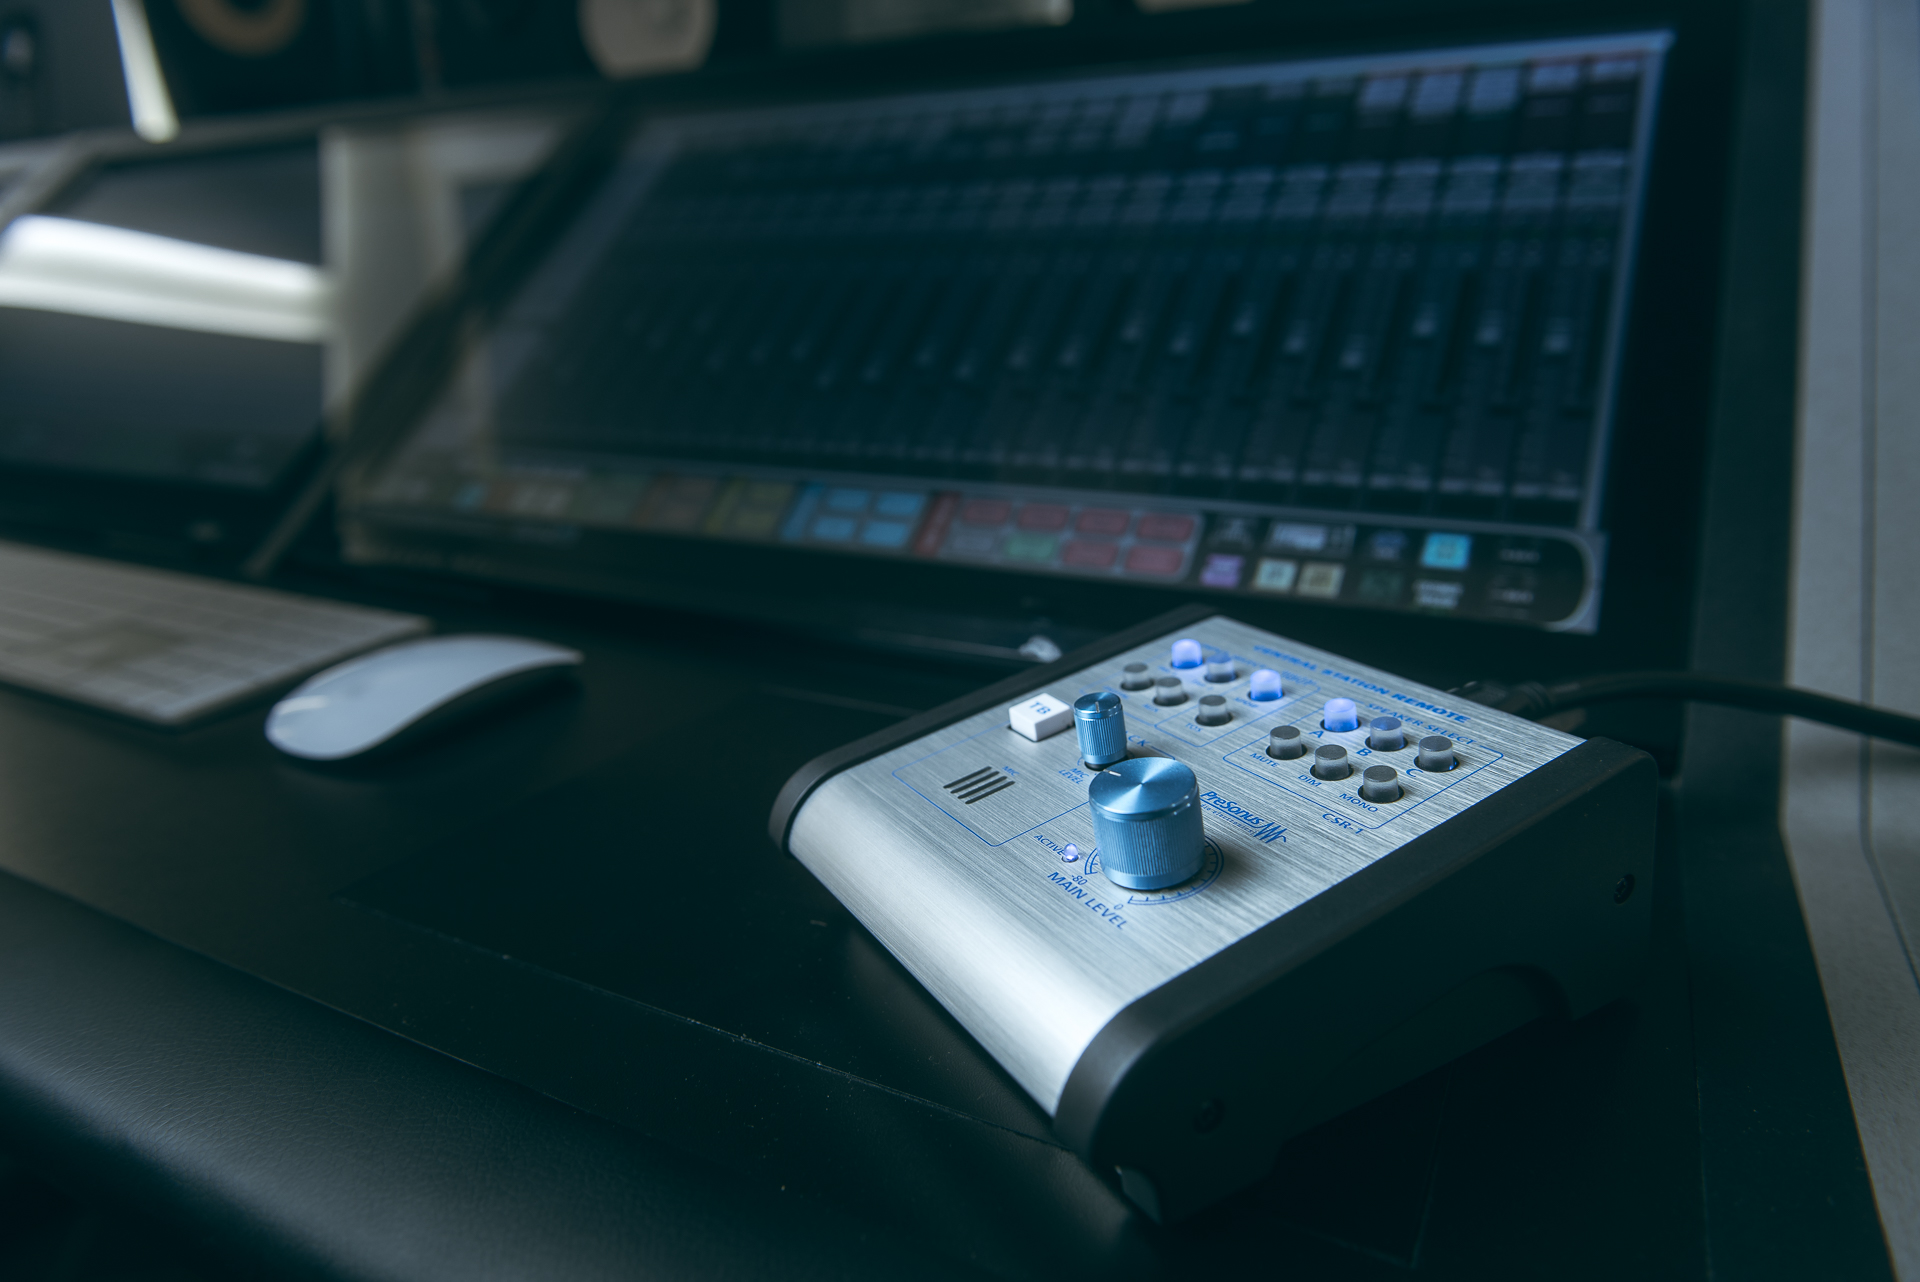 Mixing - No stone is left unturned in making your song sound the best it can.